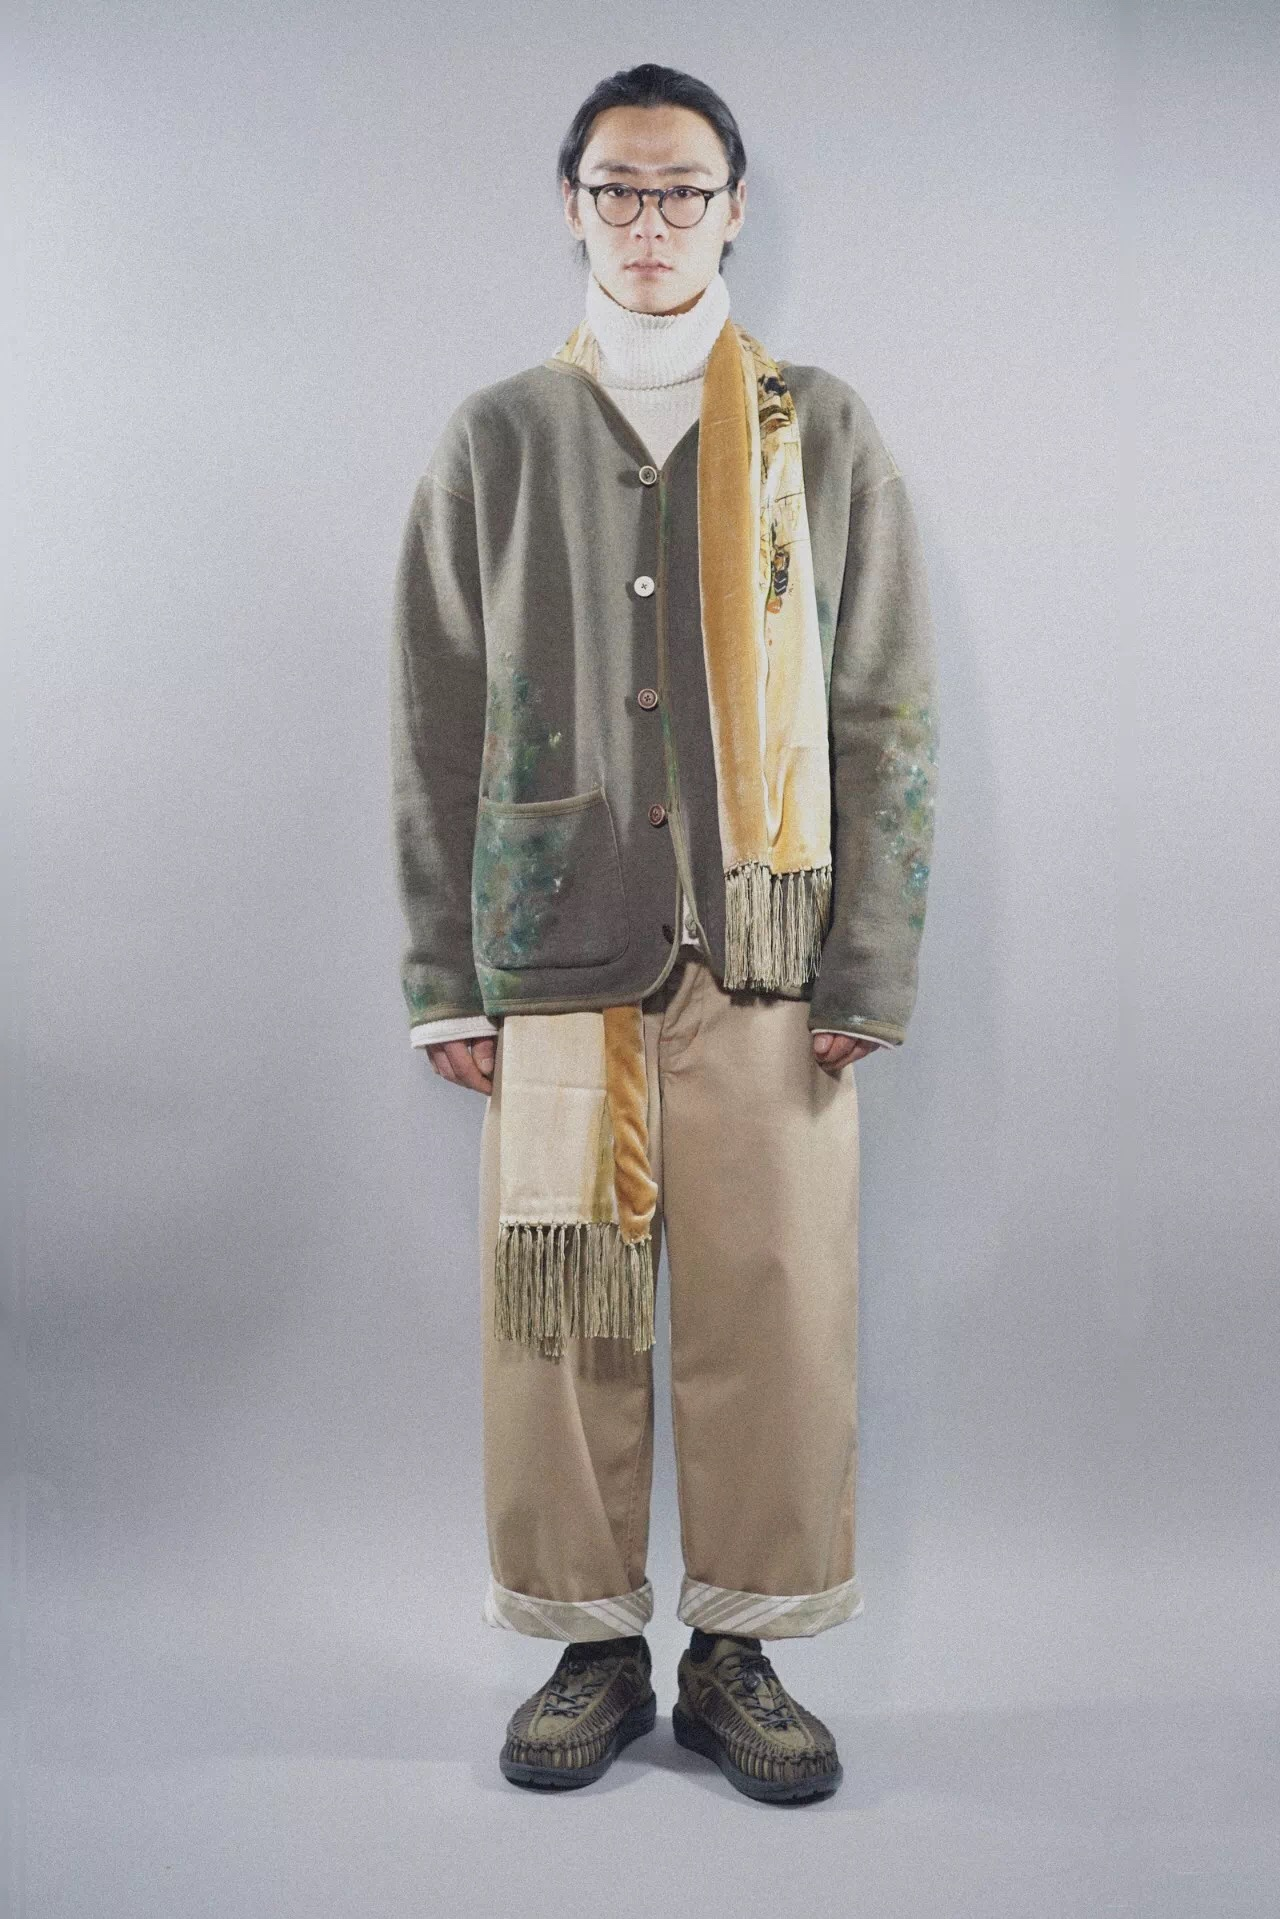 """PC - HAND WORK ARTIST CARDIGAN - OLIVE PC - FRENCH THERMAL TURTLENECK - WHITE PC - CHINO WIDE PANTS """"FRENCH VINTAGE SPECIAL"""" PC - SILK STOLE - GOLD KEEN -UNEEK - OLIVE"""